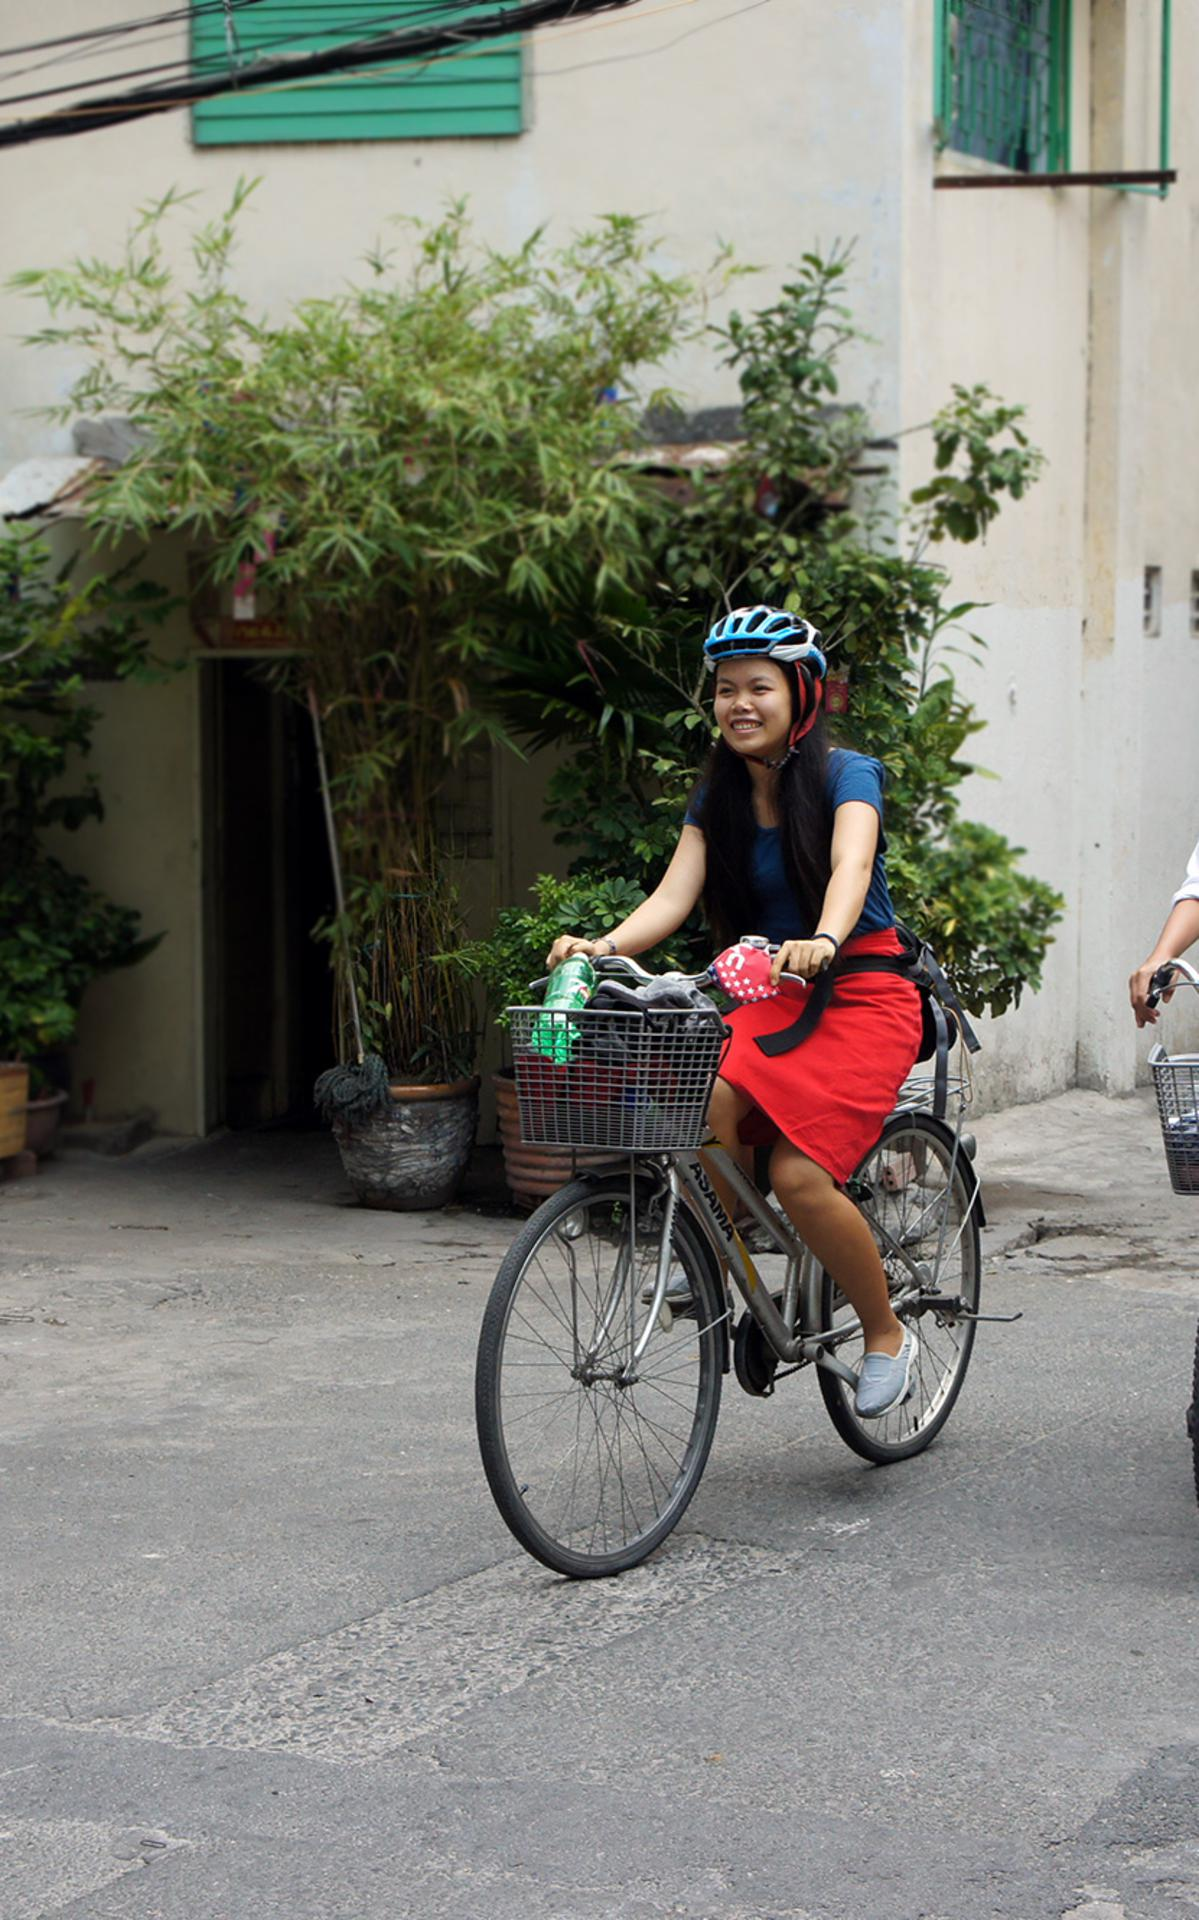 2-sisters-riding-bicycle-in-an-alley-way-hem-2015-05-2.jpg